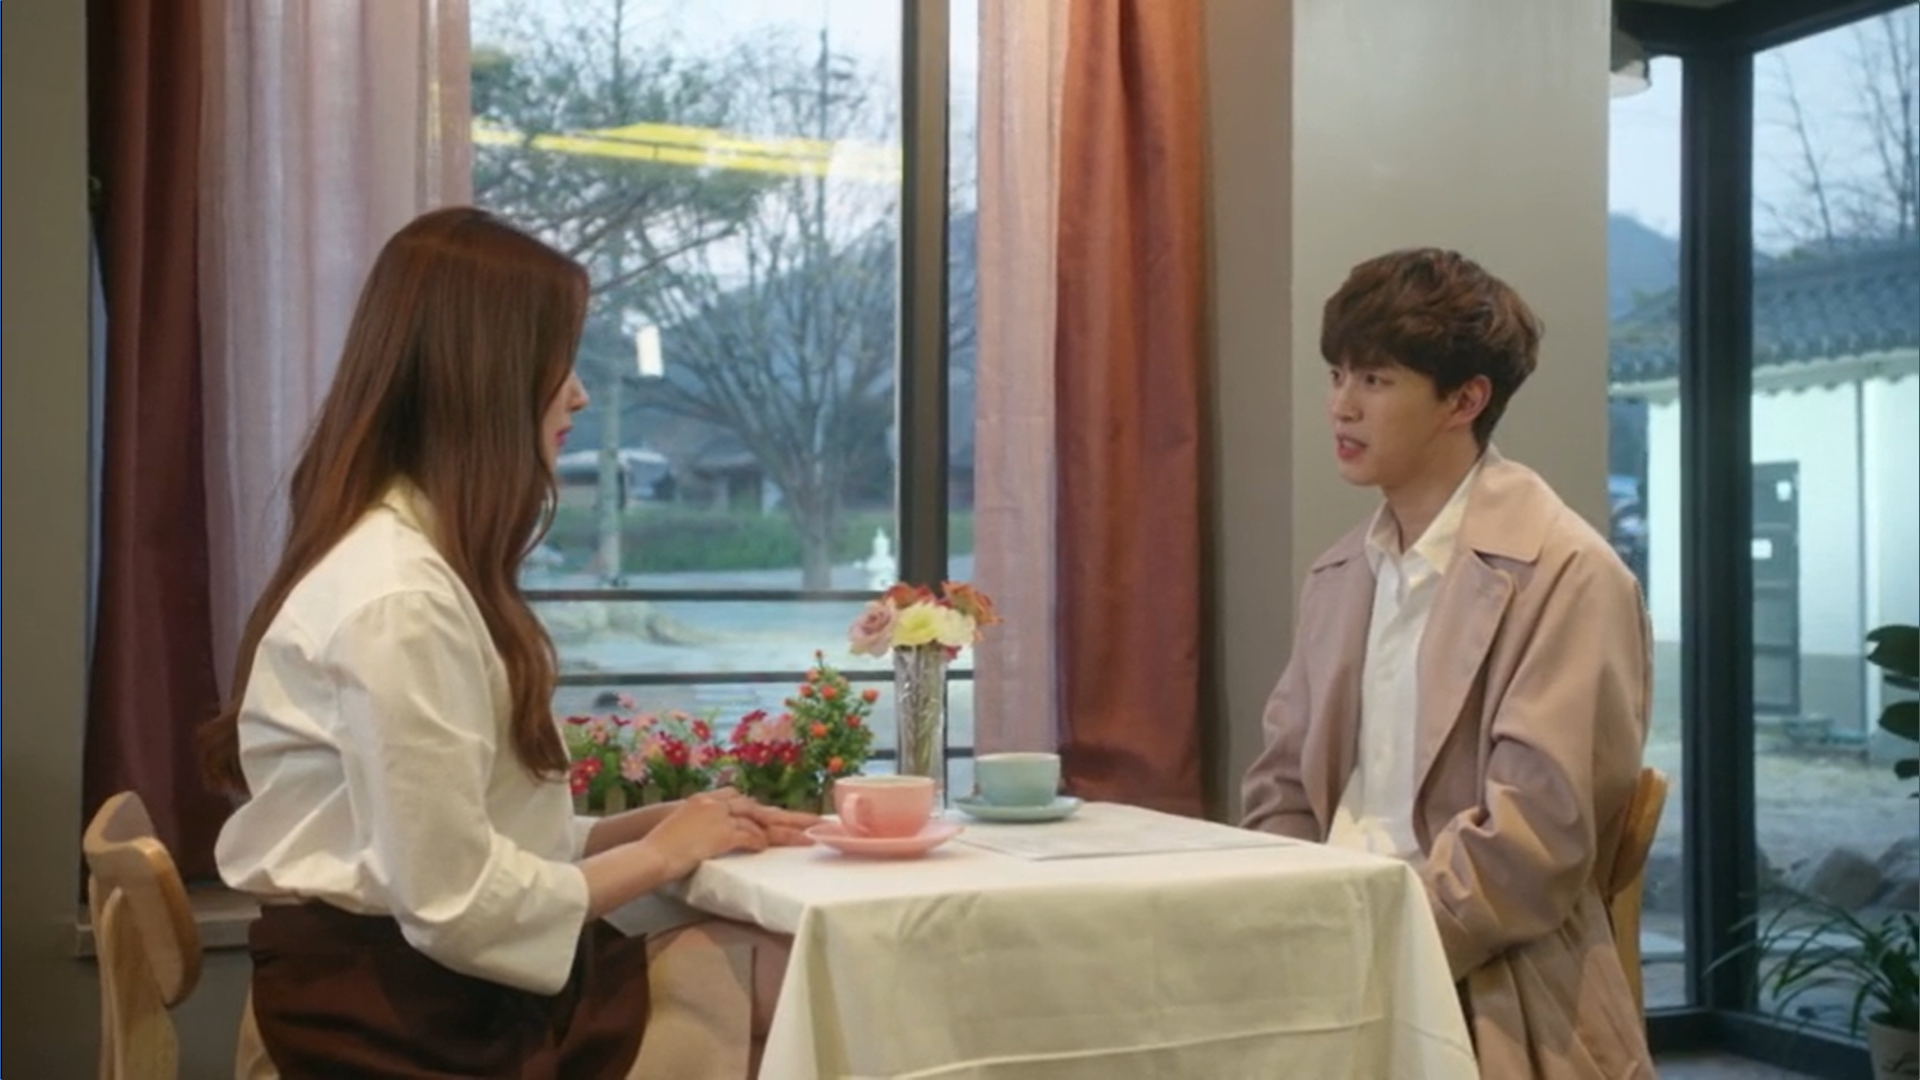 Wednesday 3:30 PM Yoon Jae-won and Gong Na-yeon in the coffee shop